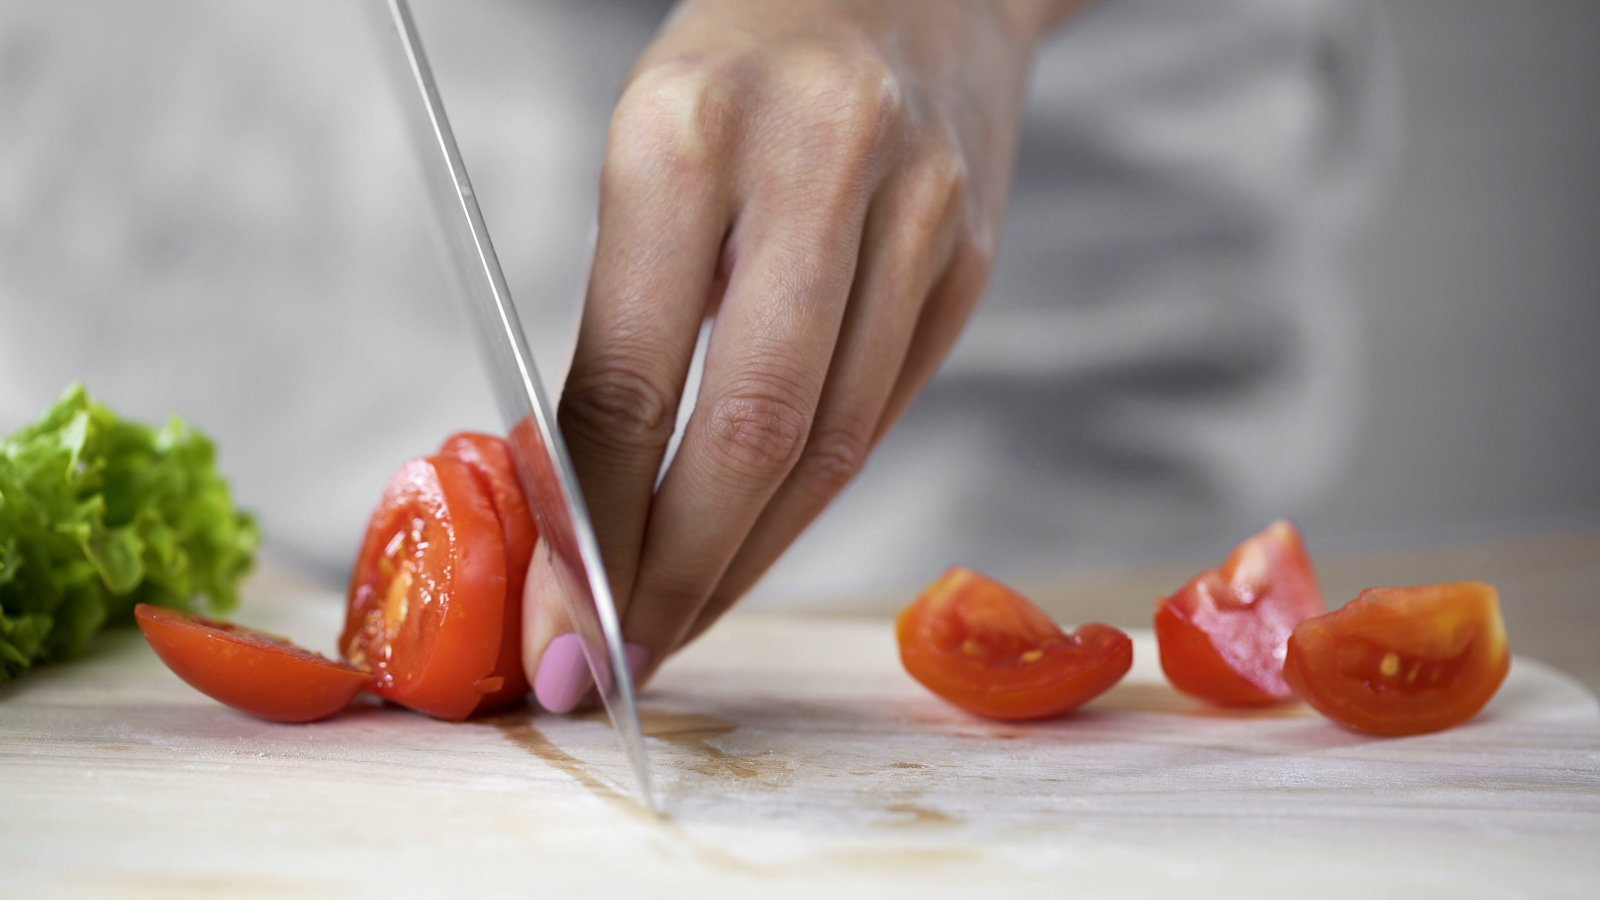 cutting up tomatoes